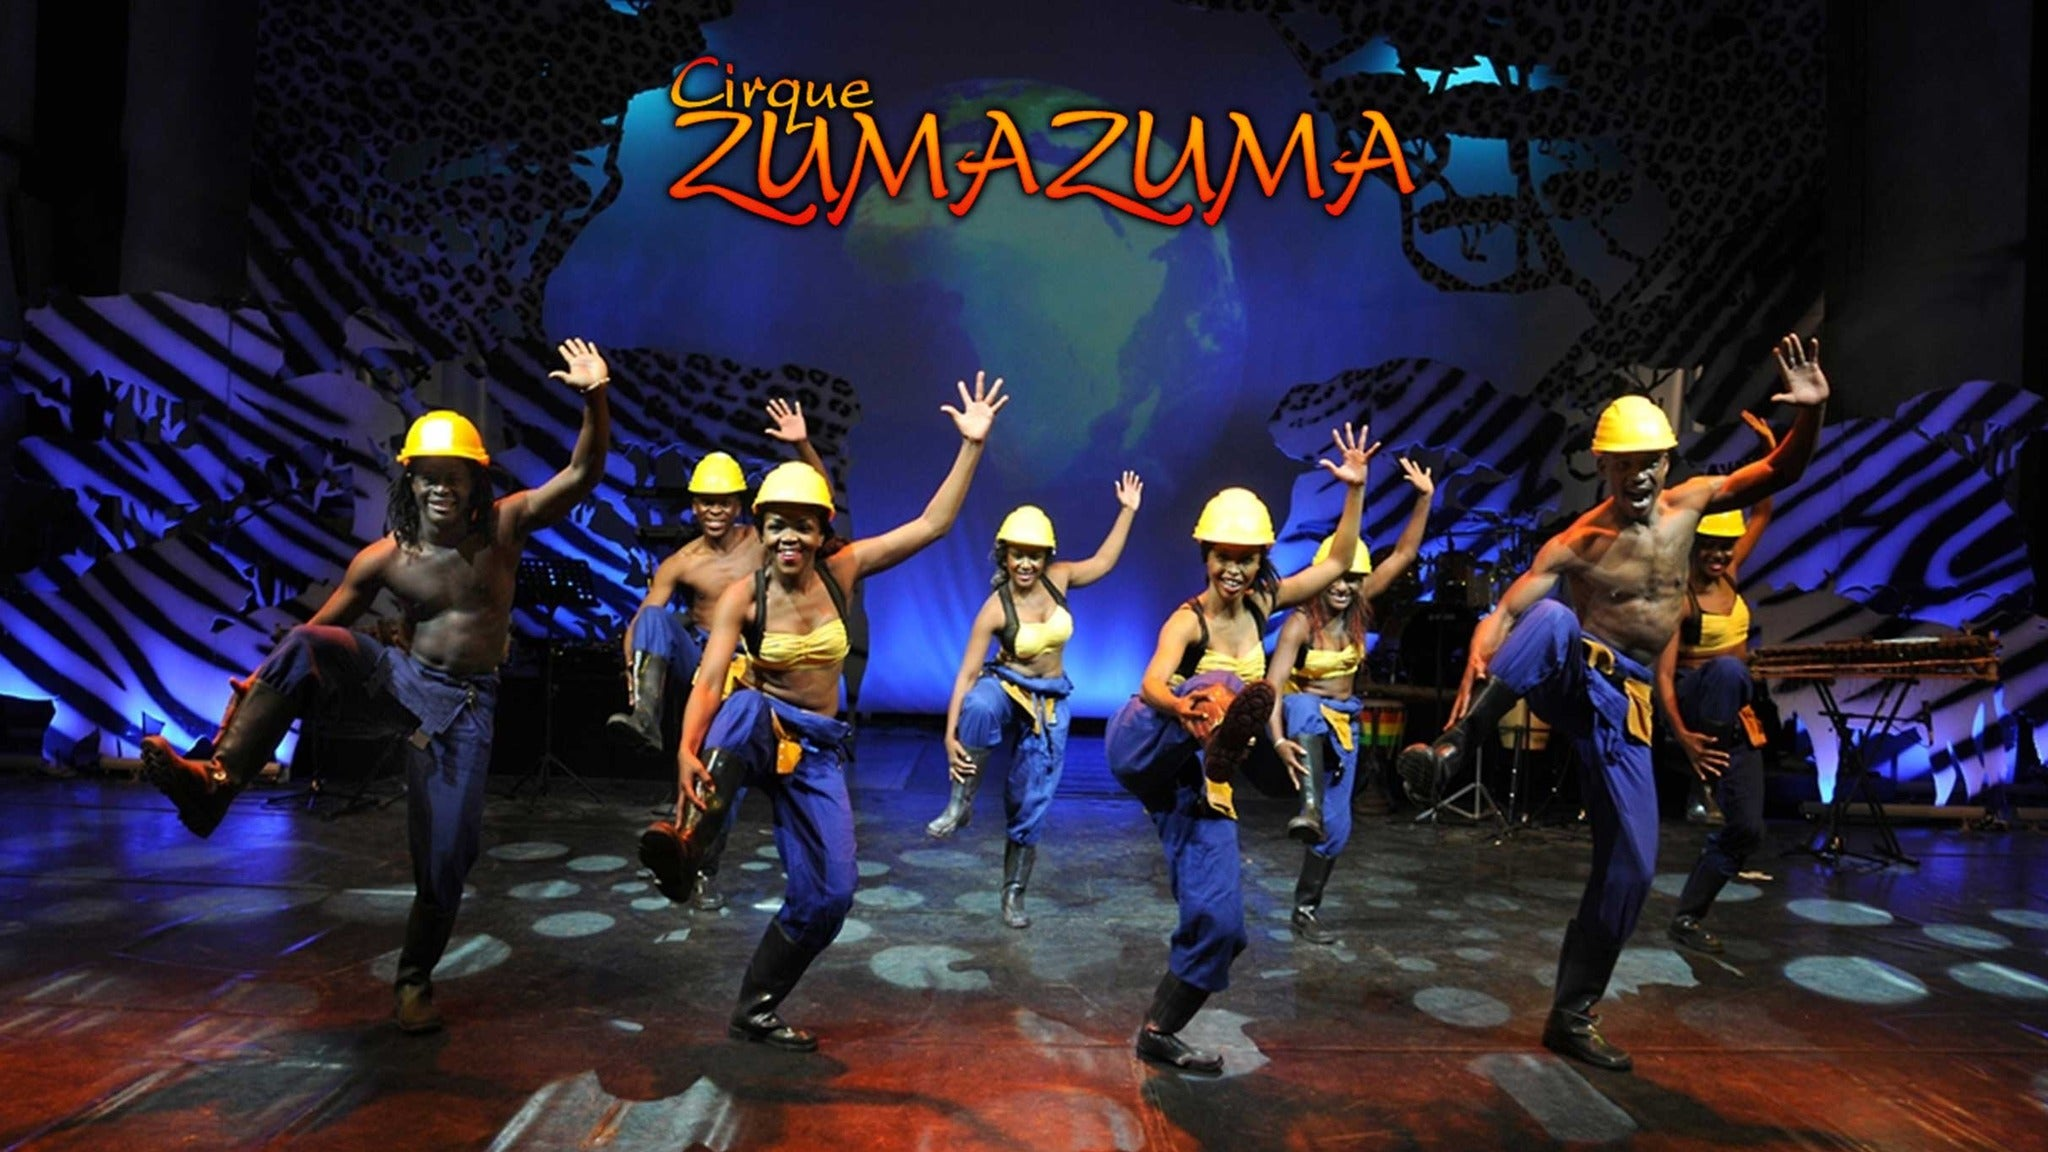 Cirque Zuma Zuma - Smart Stage Matinee Series